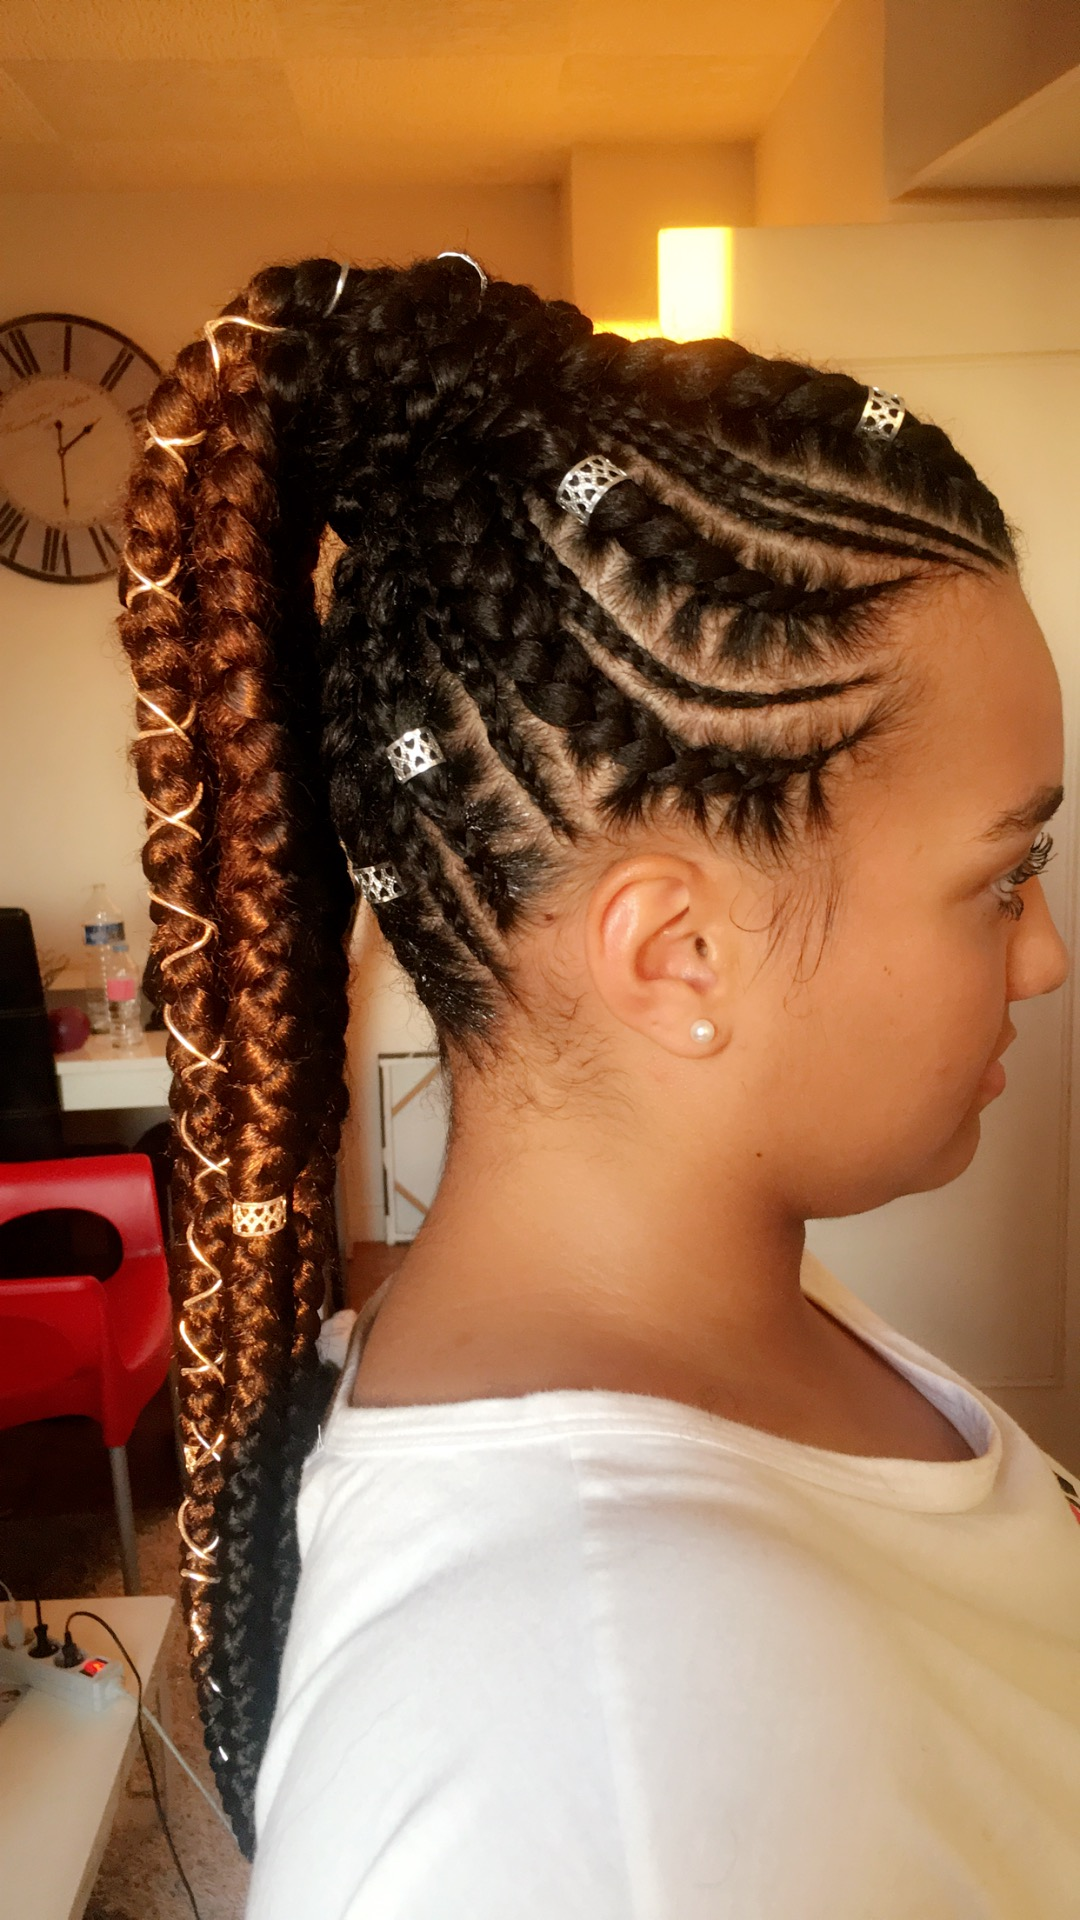 salon de coiffure afro tresse tresses box braids crochet braids vanilles tissages paris 75 77 78 91 92 93 94 95 WMTDCIDM